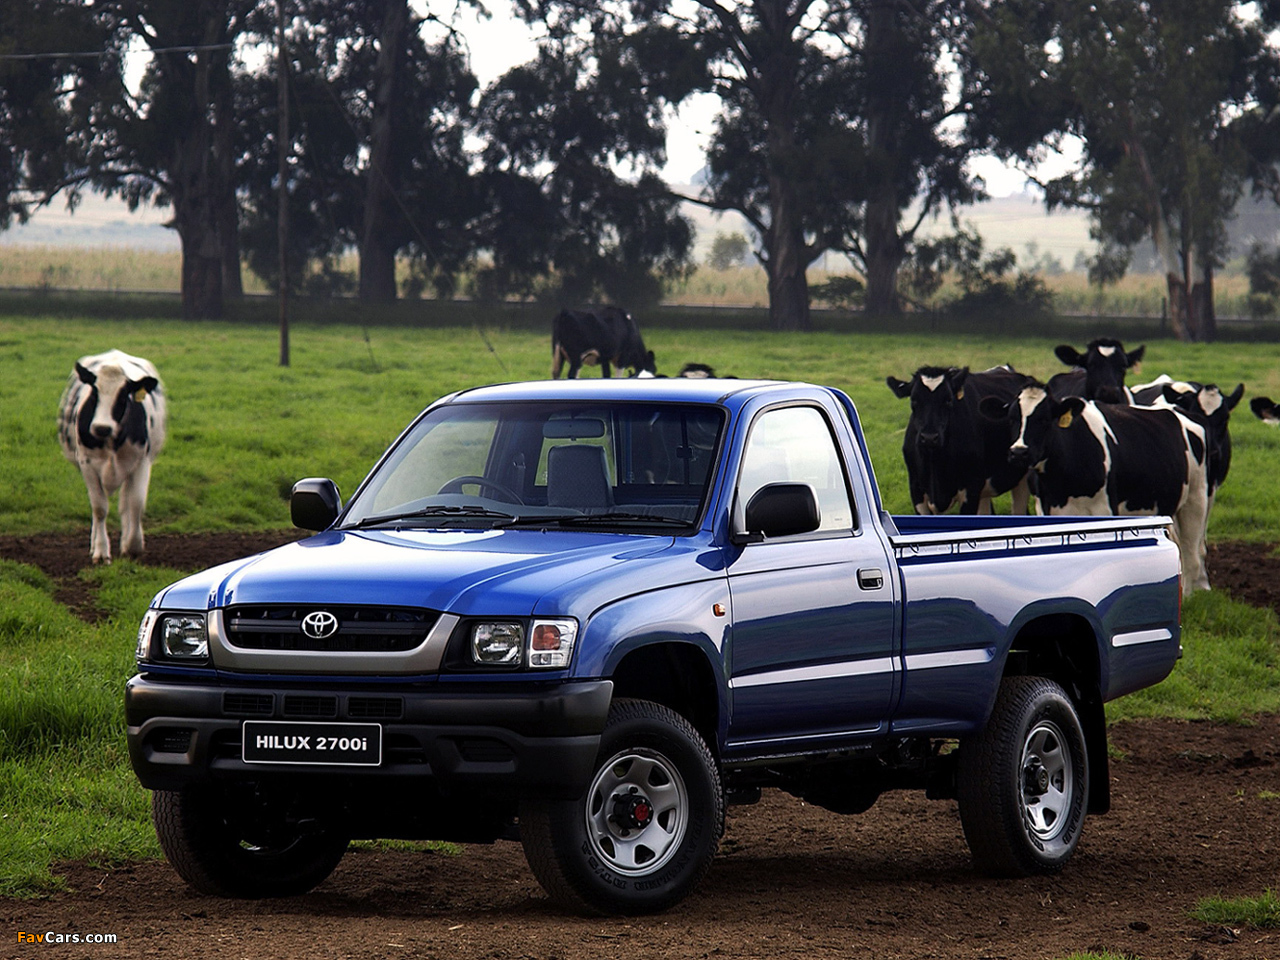 Pictures Of Toyota Hilux 2700i Single Cab Za Spec 2001 05